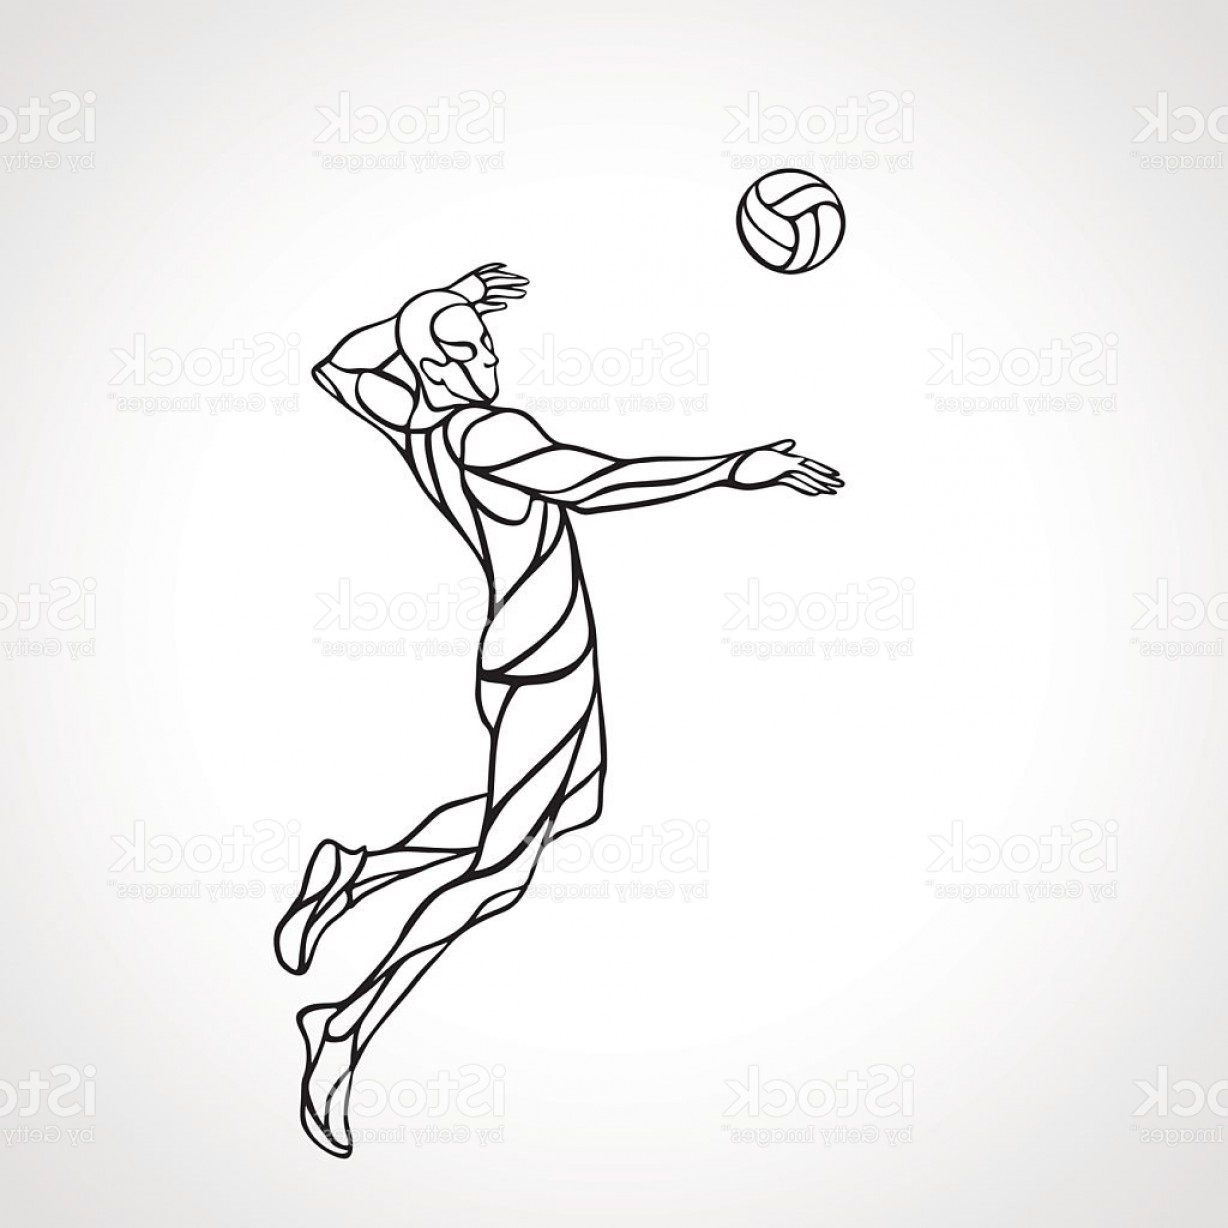 Volleyball Player Vector: Volleyball Attacker Player Outline Silhouette Eps Vector Gm